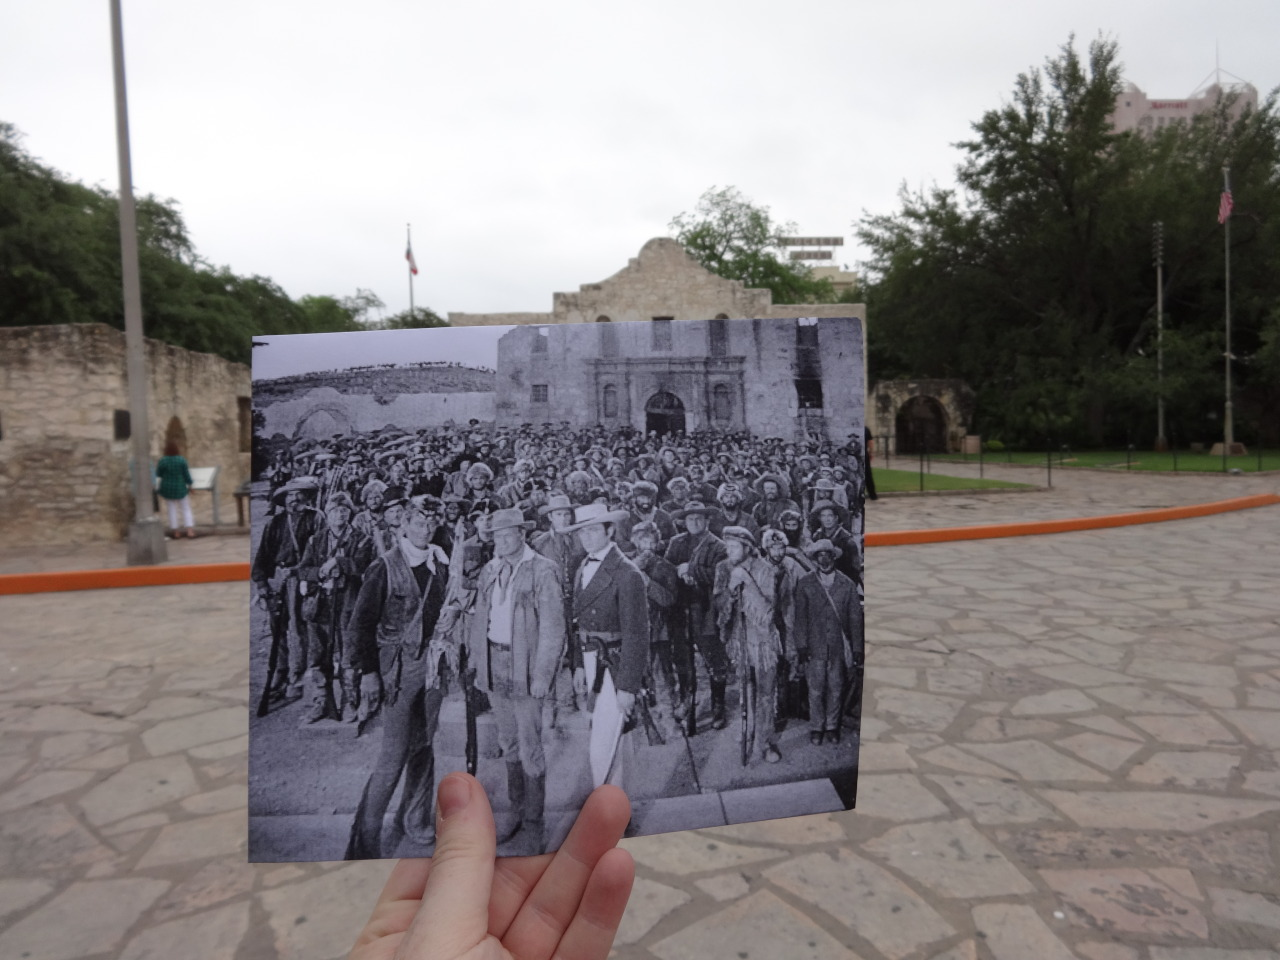 The Alamo (1960) Image: 366 Posted by: @Moloknee  A limited number (10) of signed and numbered prints are now available for purchase by clicking the button below the images or emailing me here.